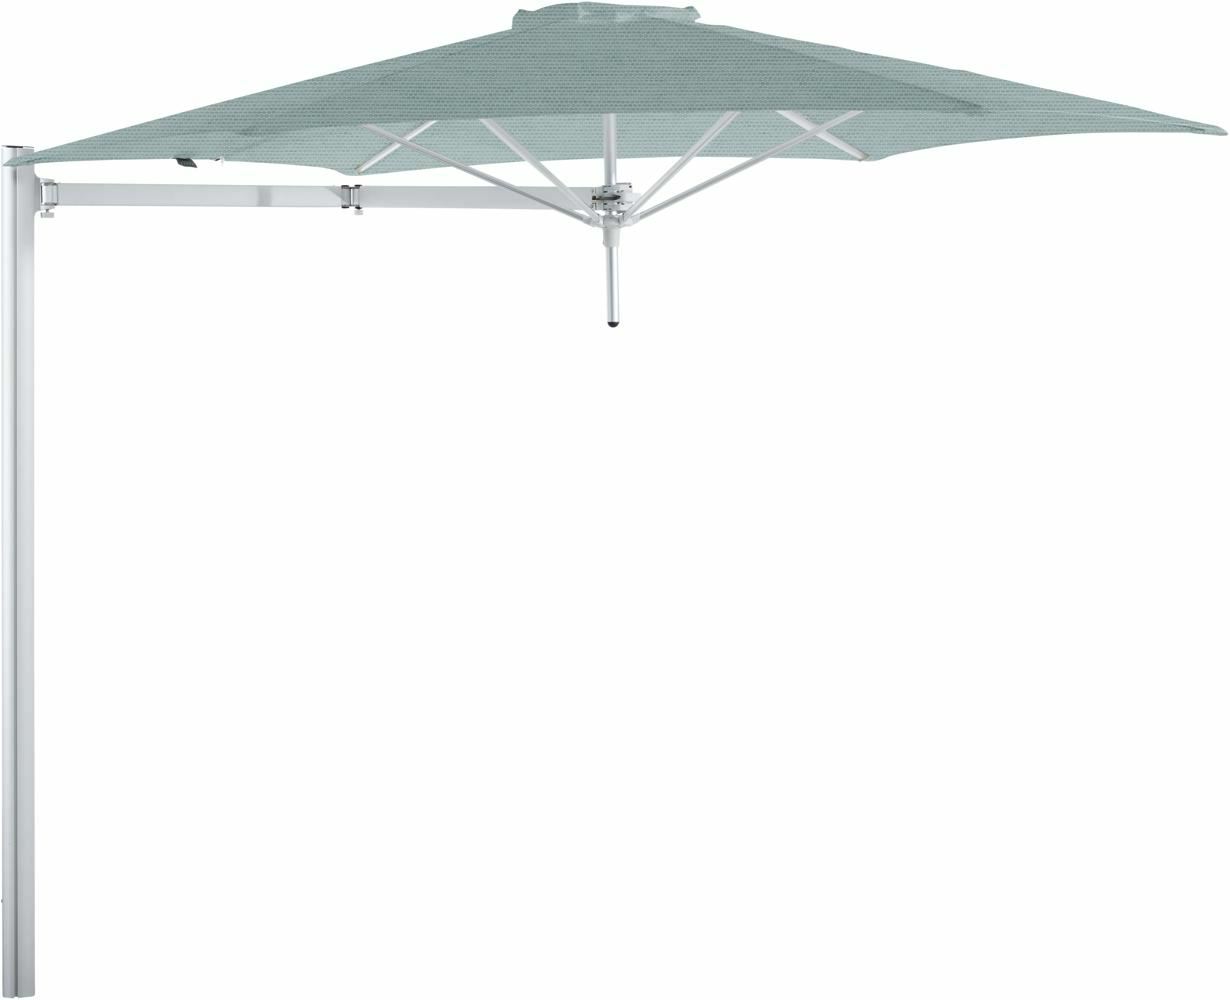 Paraflex cantilever umbrella round 3 m with Curacao fabric and a Neo arm